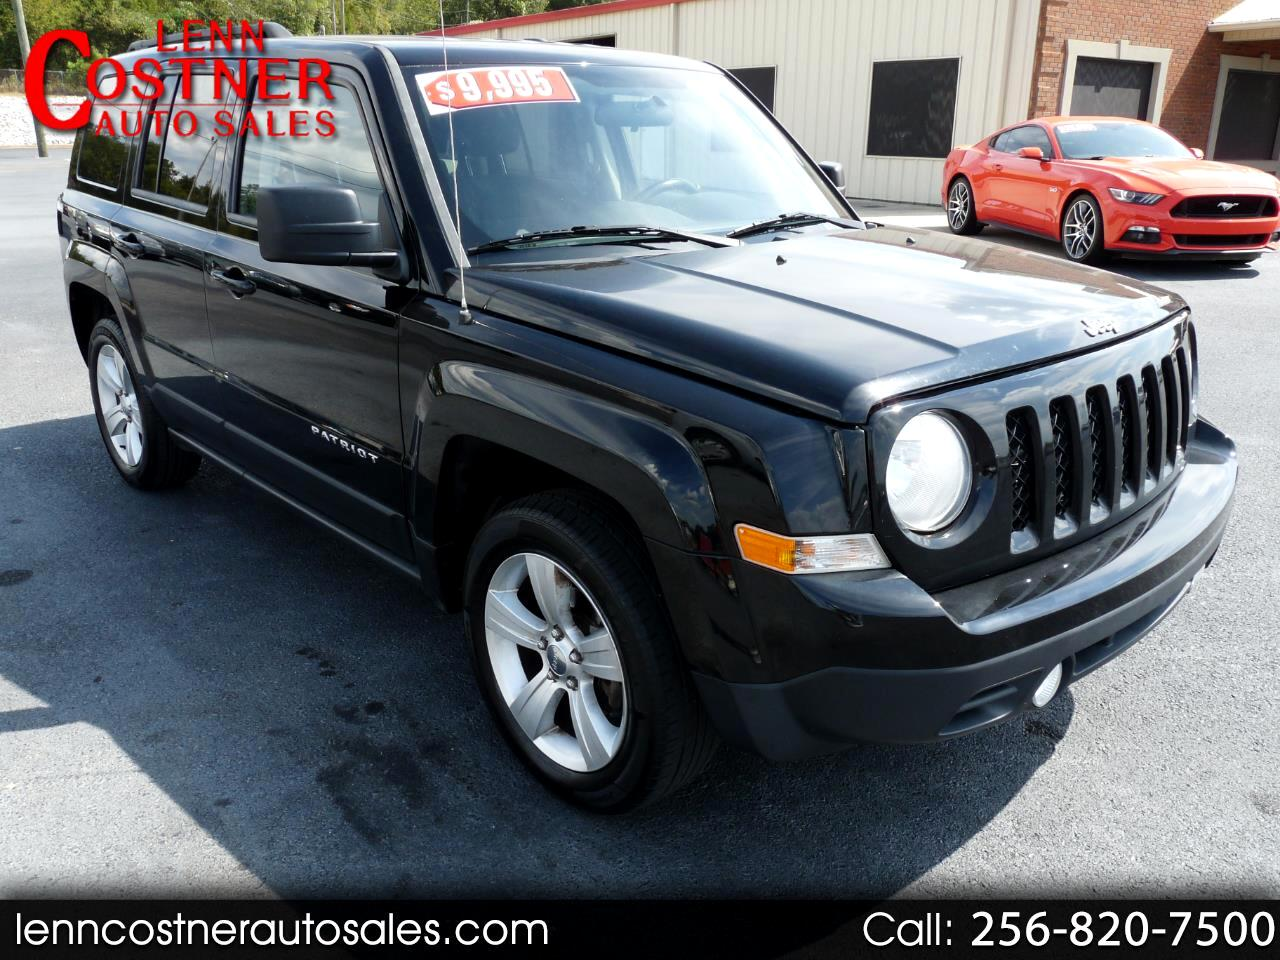 2013 Jeep Patriot FWD 4dr Latitude